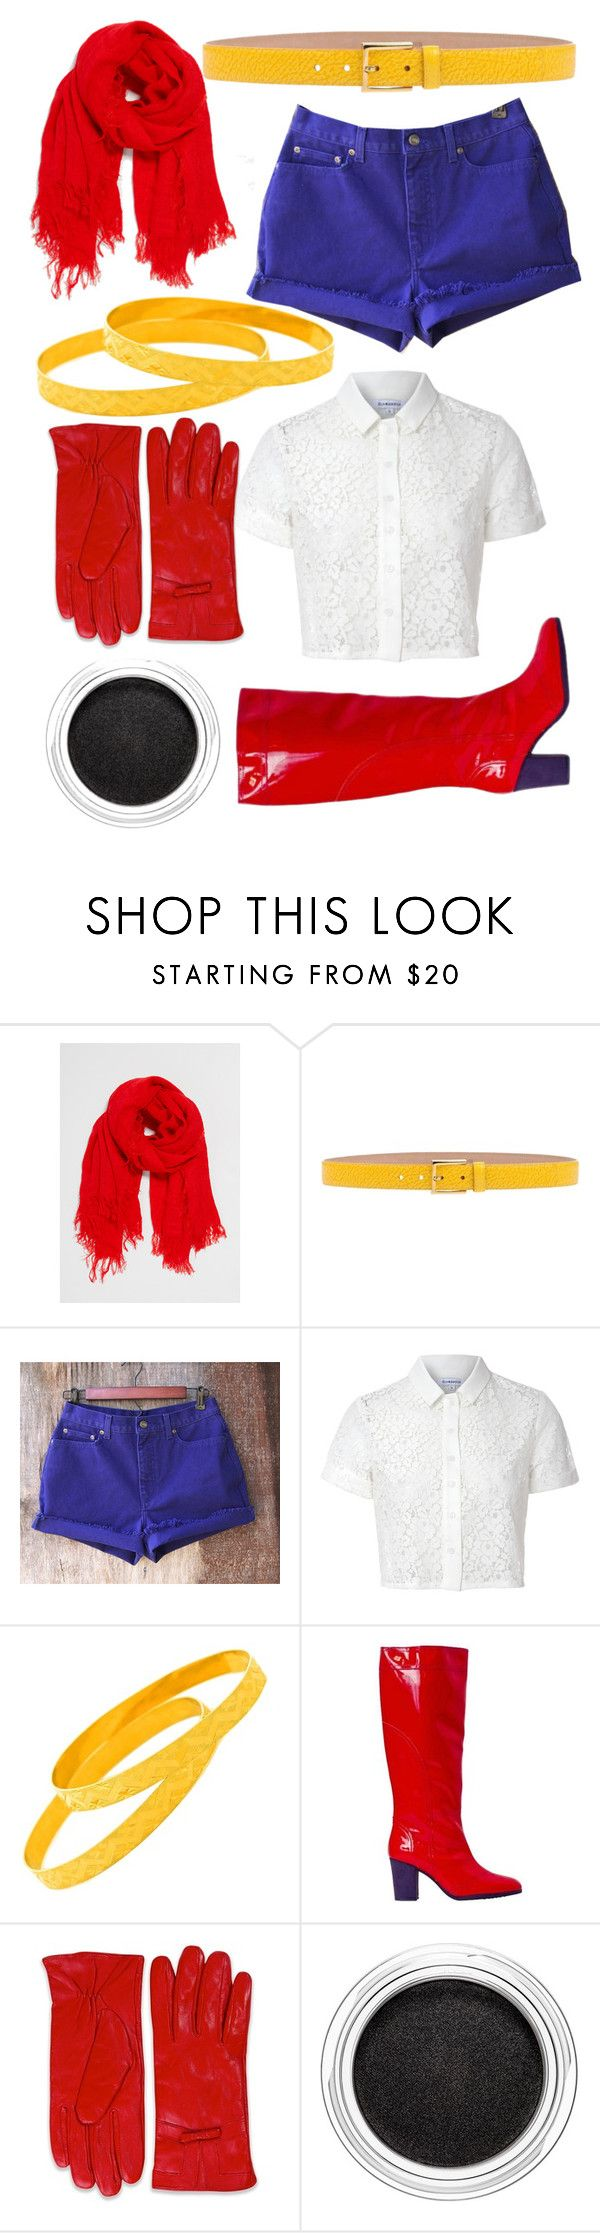 """""""Papyrus (Undertale)"""" by thefnaftheorists ❤ liked on Polyvore featuring maurices, Michael Kors, Glamorous and Clarins"""